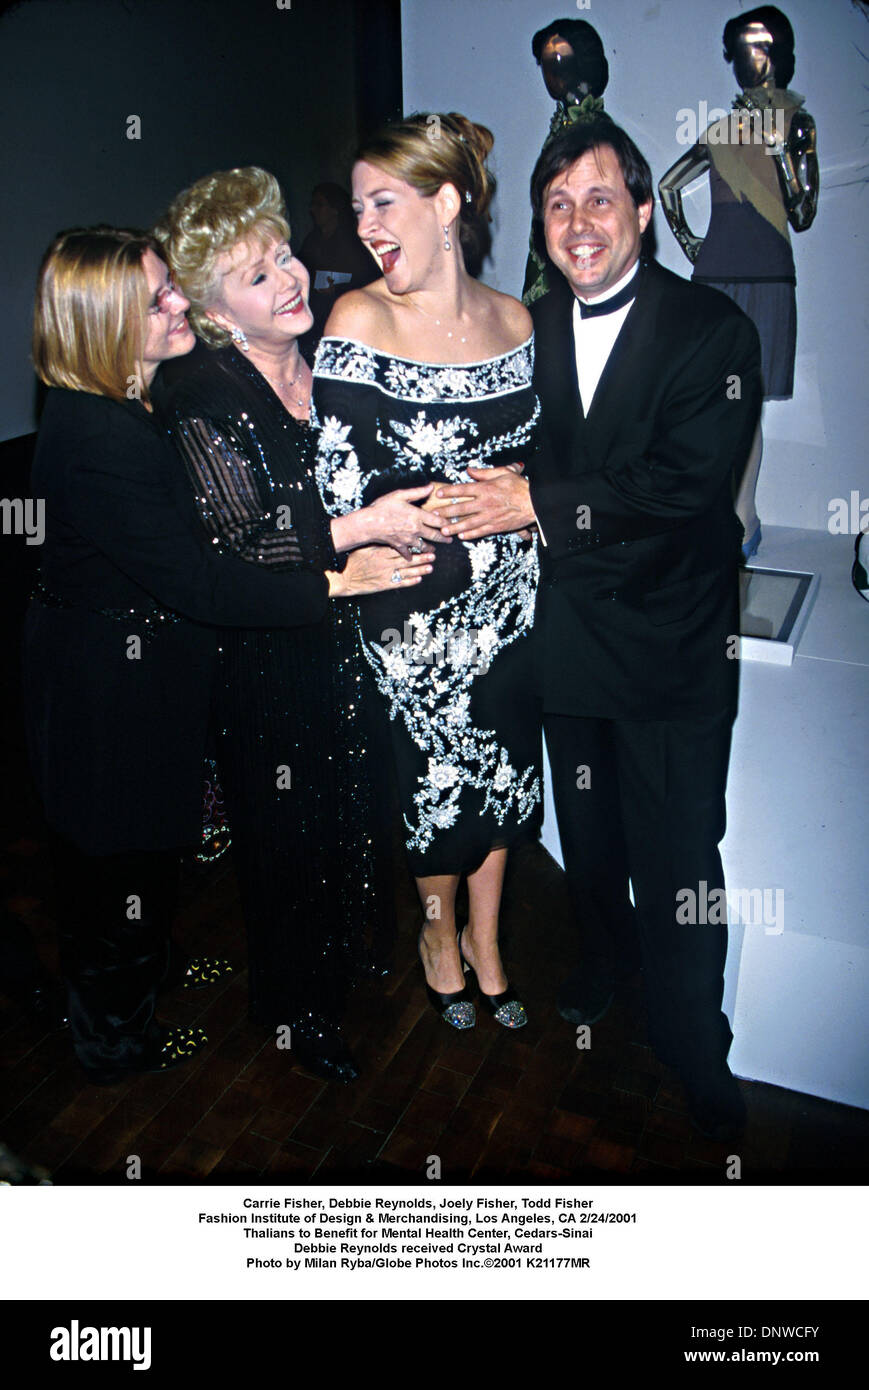 Feb. 24, 2001 - Carrie Fisher, Debbie Reynolds, Joely Fisher, Todd Fisher.Fashion Institute of Design & Merchandising, Los Angeles, CA 2/24/2001.Thalians to Benefit for Mental Health Center, Cedars-Sinai.Debbie Reynolds received Crystal Award. Milan Ryba/   2001 K21177MR(Credit Image: © Globe Photos/ZUMAPRESS.com) - Stock Image